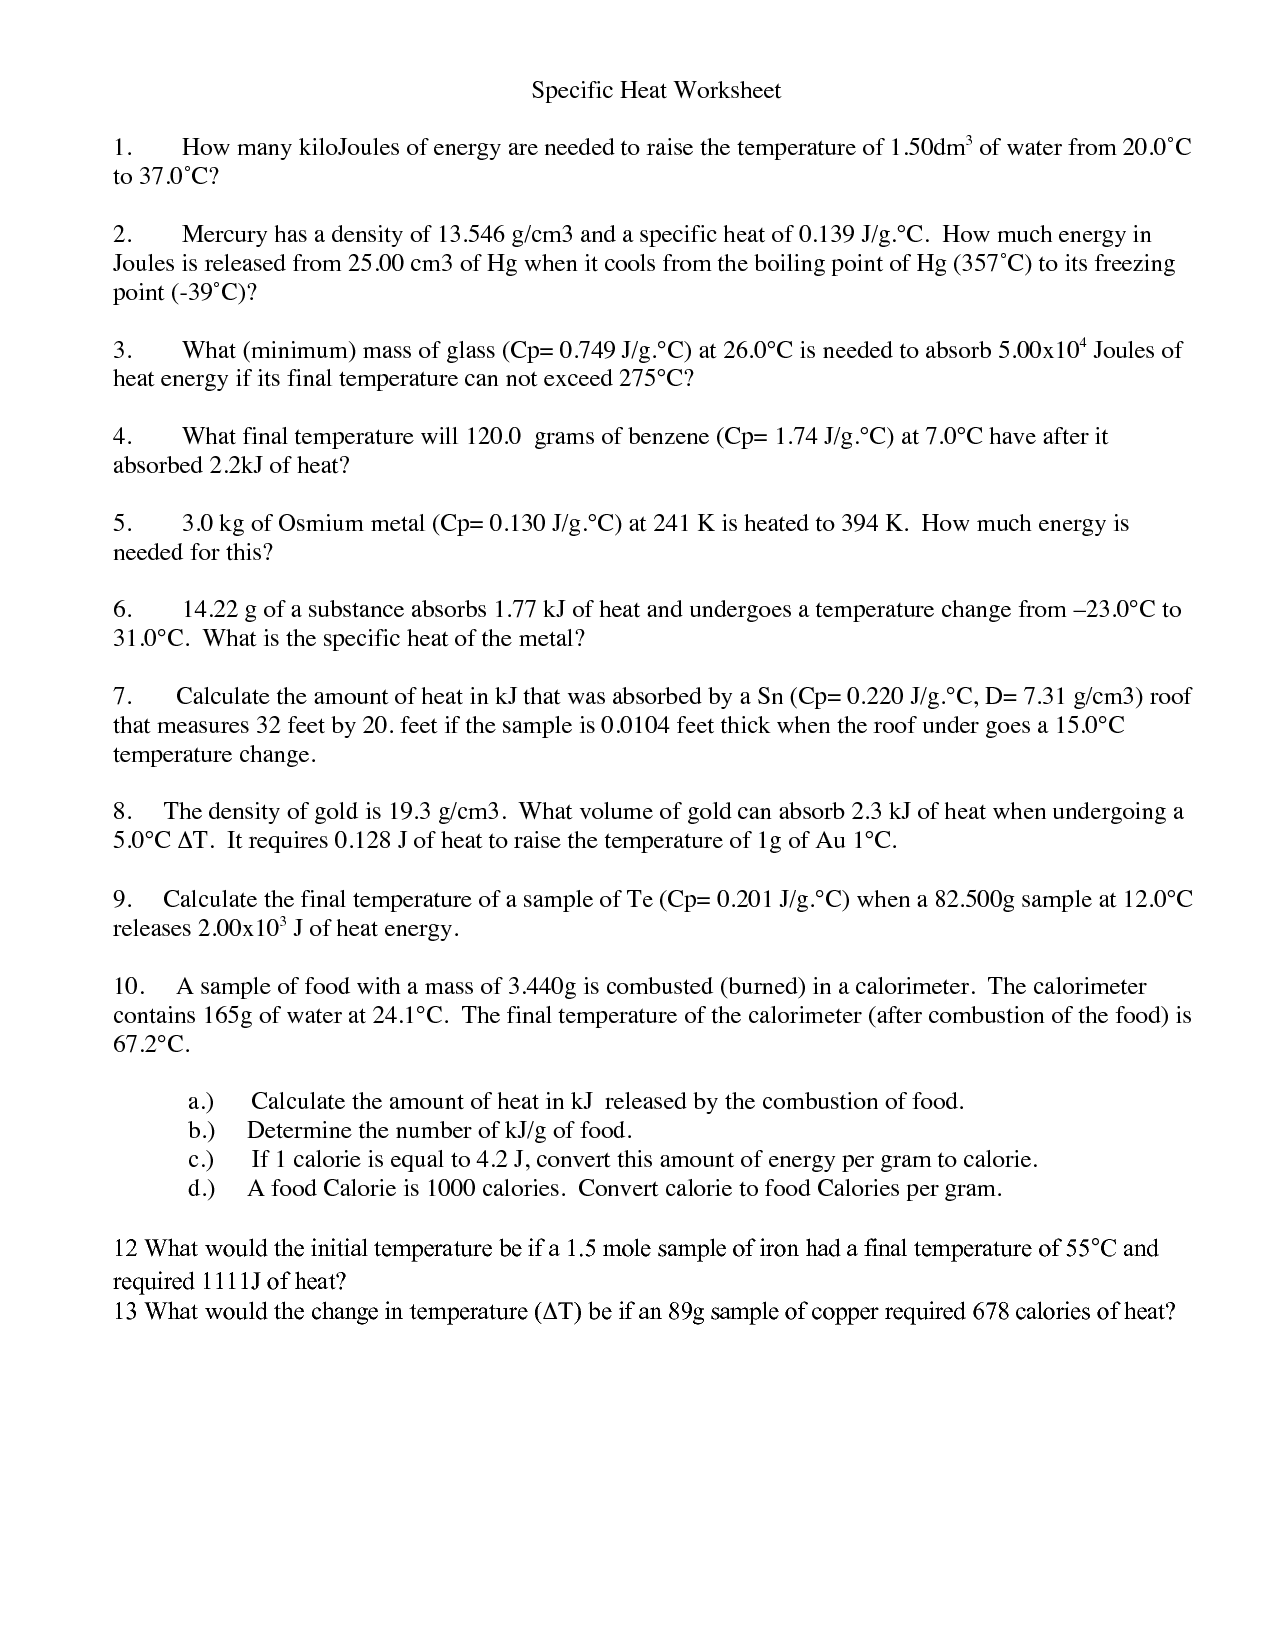 Worksheet Specific Heat Capacity Worksheet Grass Fedjp